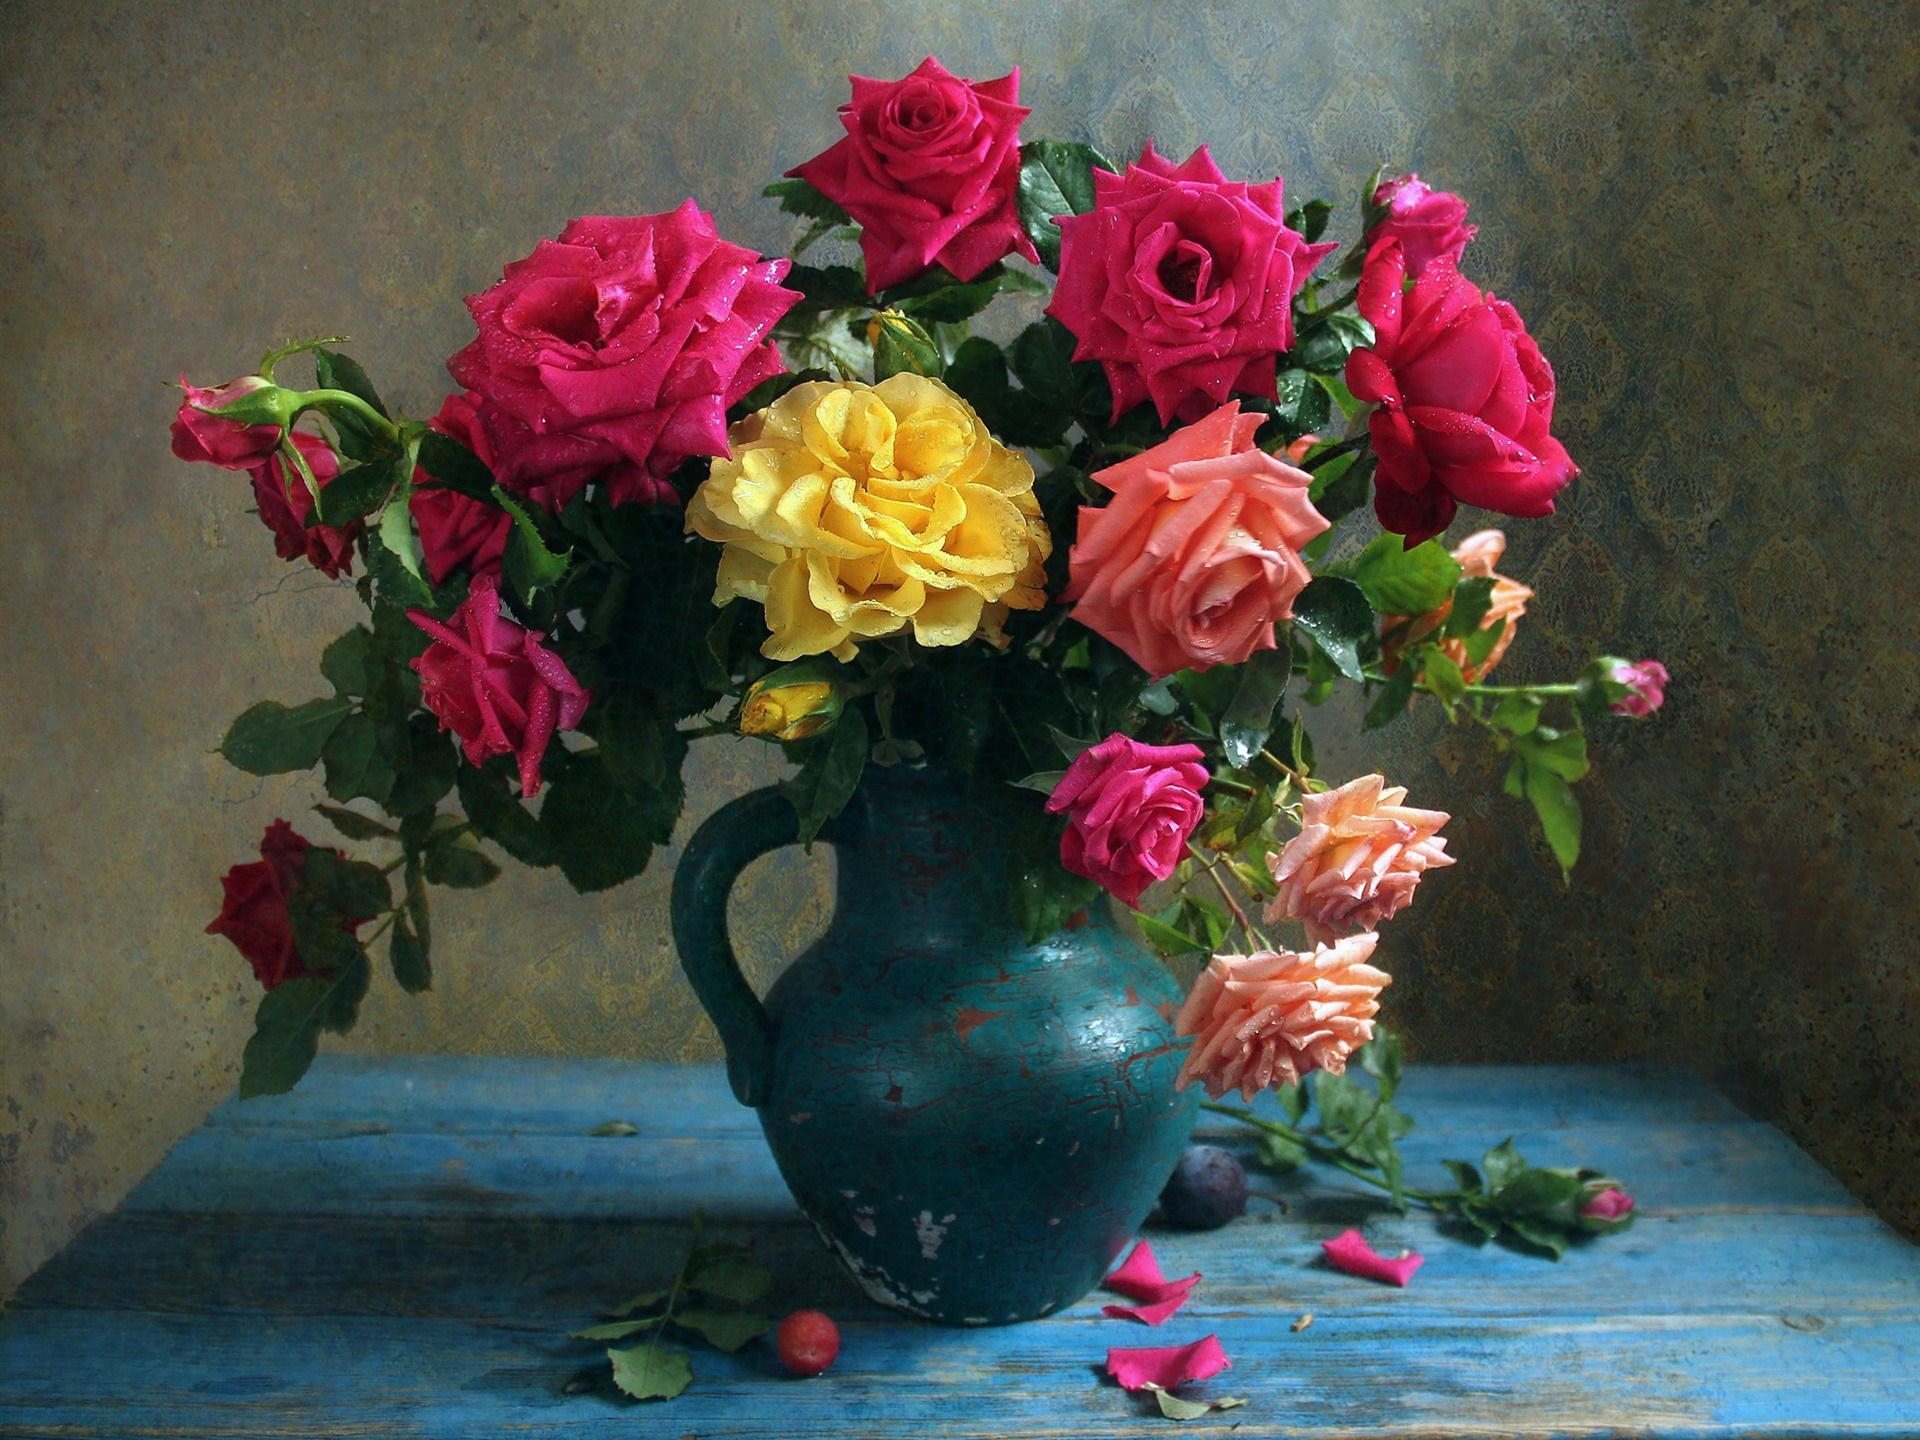 Wallpaper Pink, Yellow, Red Roses, Vase, Water Droplets